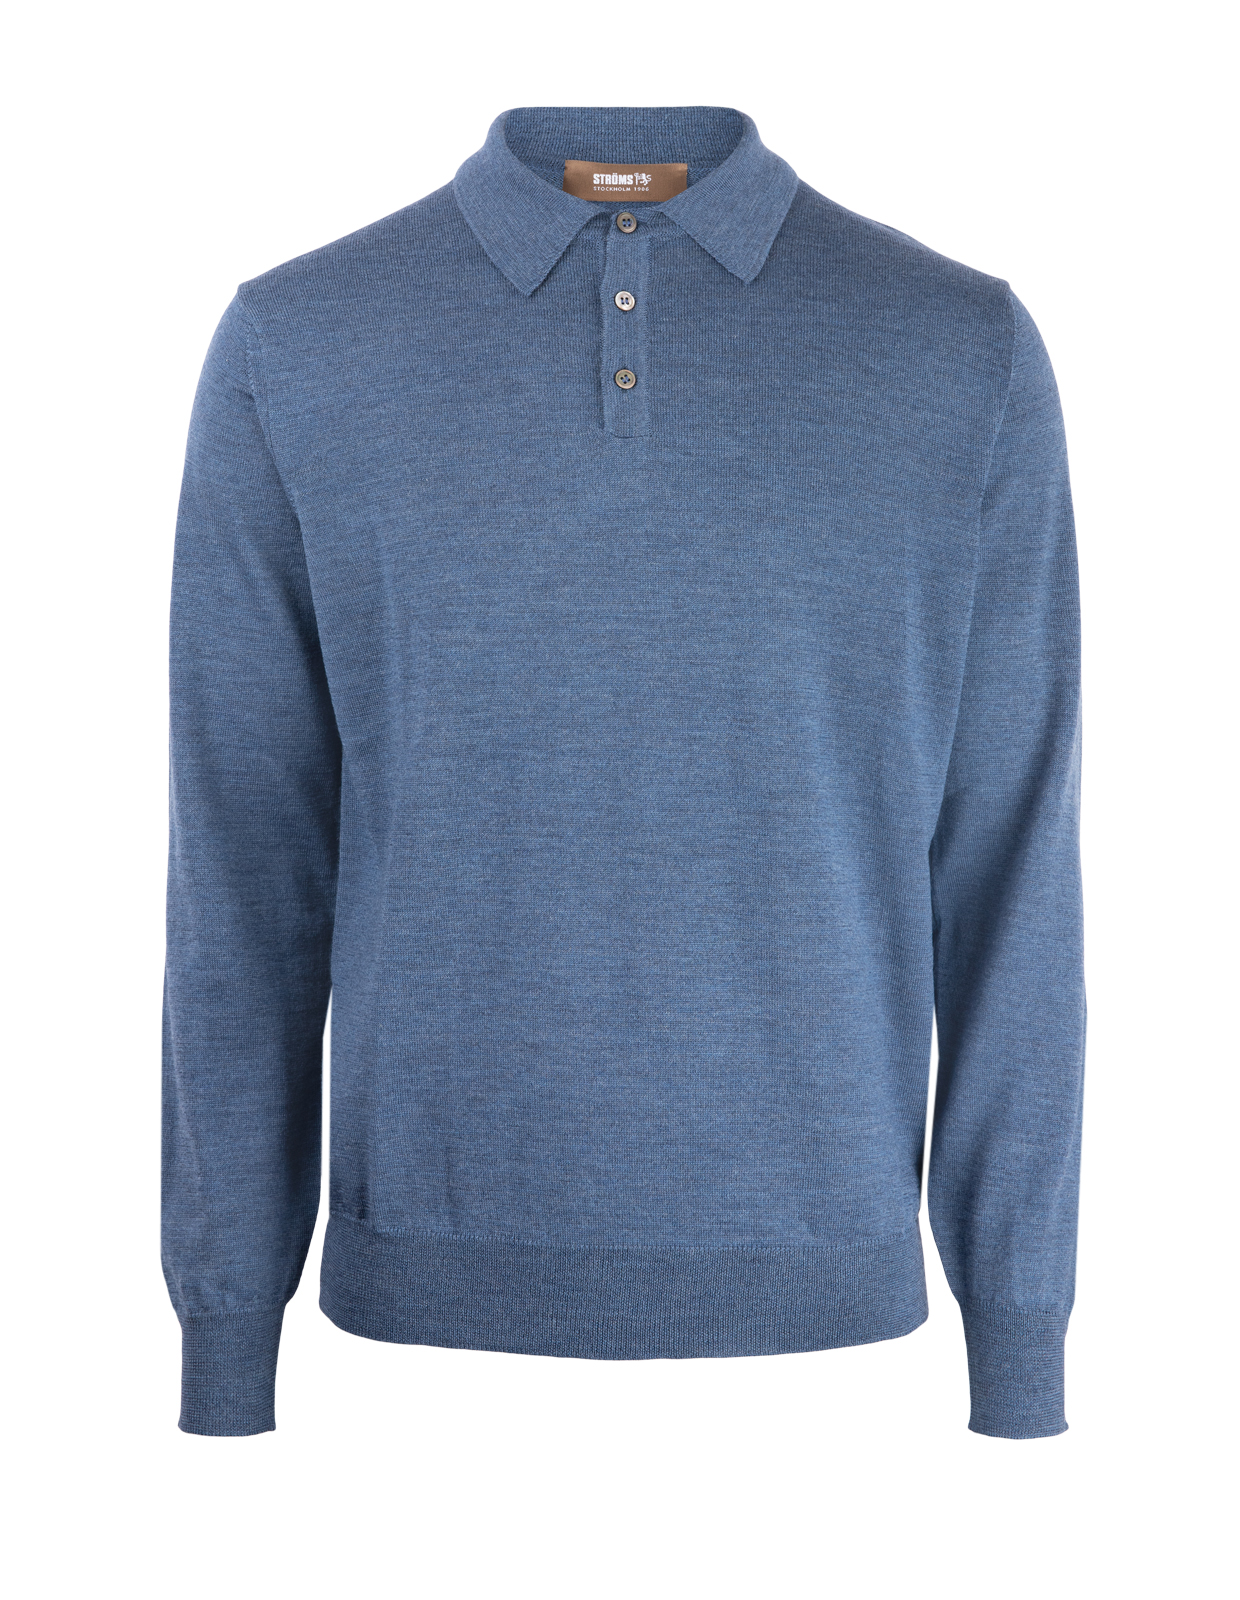 Poloshirt Sweater Merino Denim